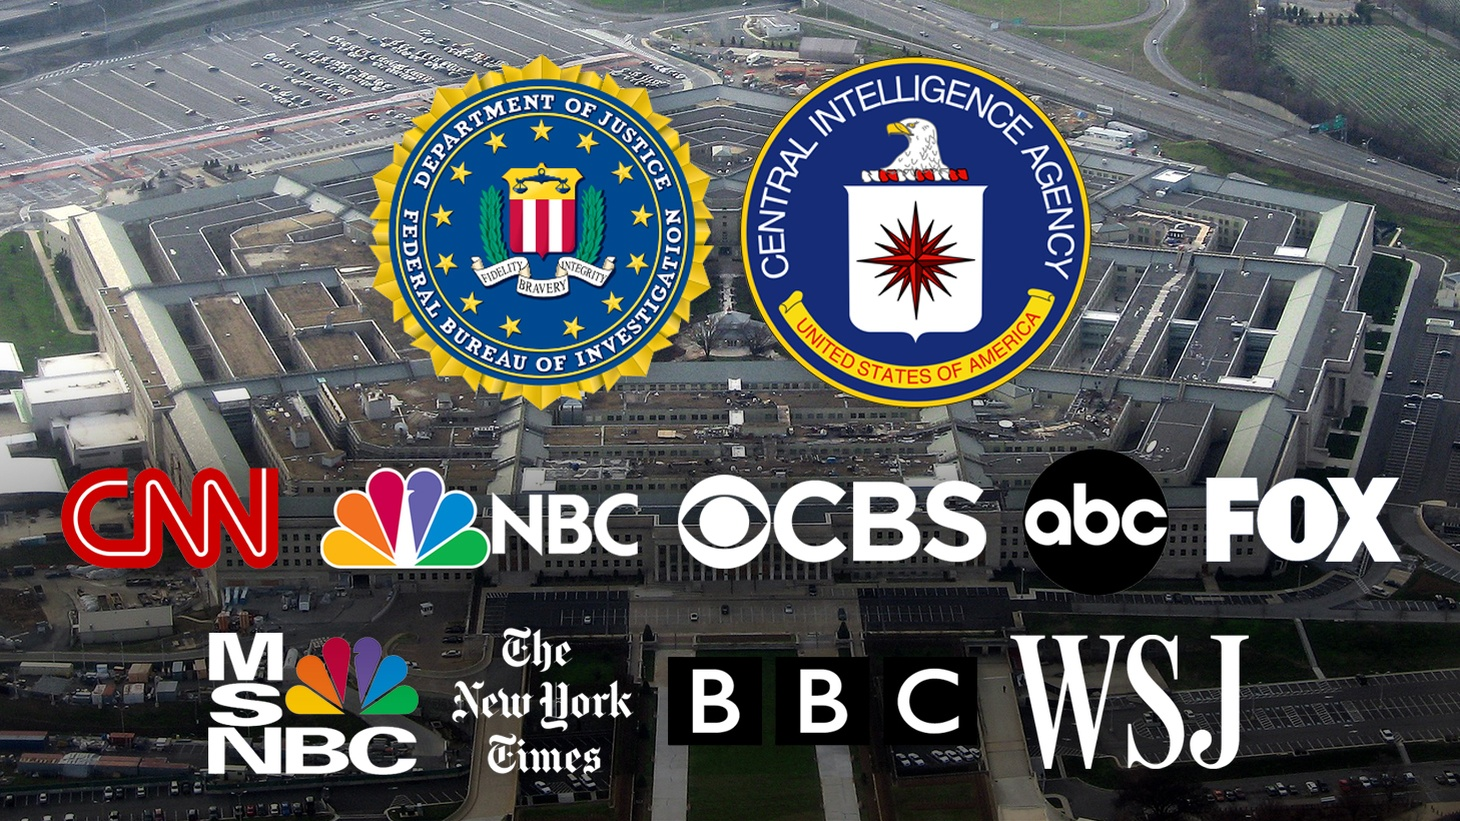 America's mainstream media are obsessed with President Trump's off-hand policymaking in military and foreign affairs. But his mistakes don't justify the unquestioned authority given the Pentagon, the CIA and the FBI.